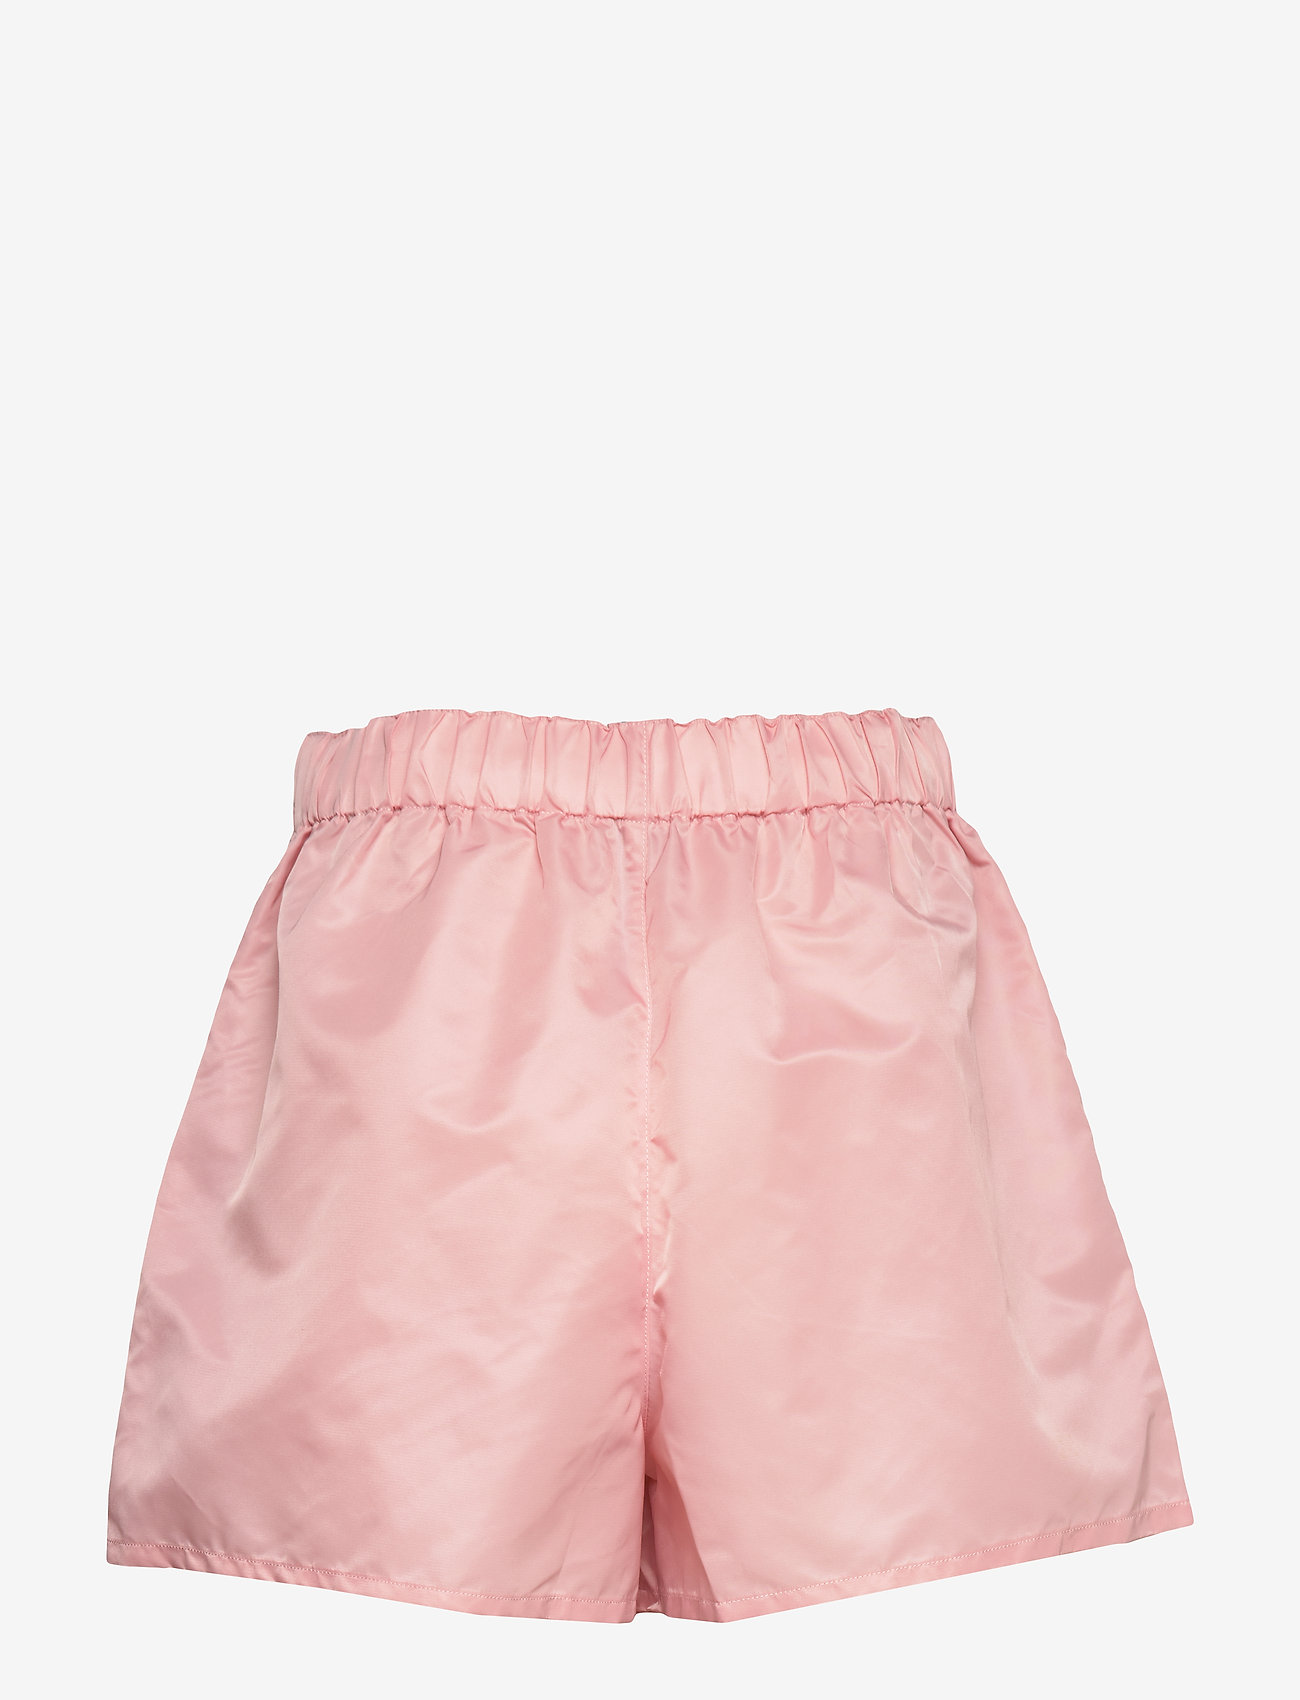 Lovechild 1979 Alessio Shorts -